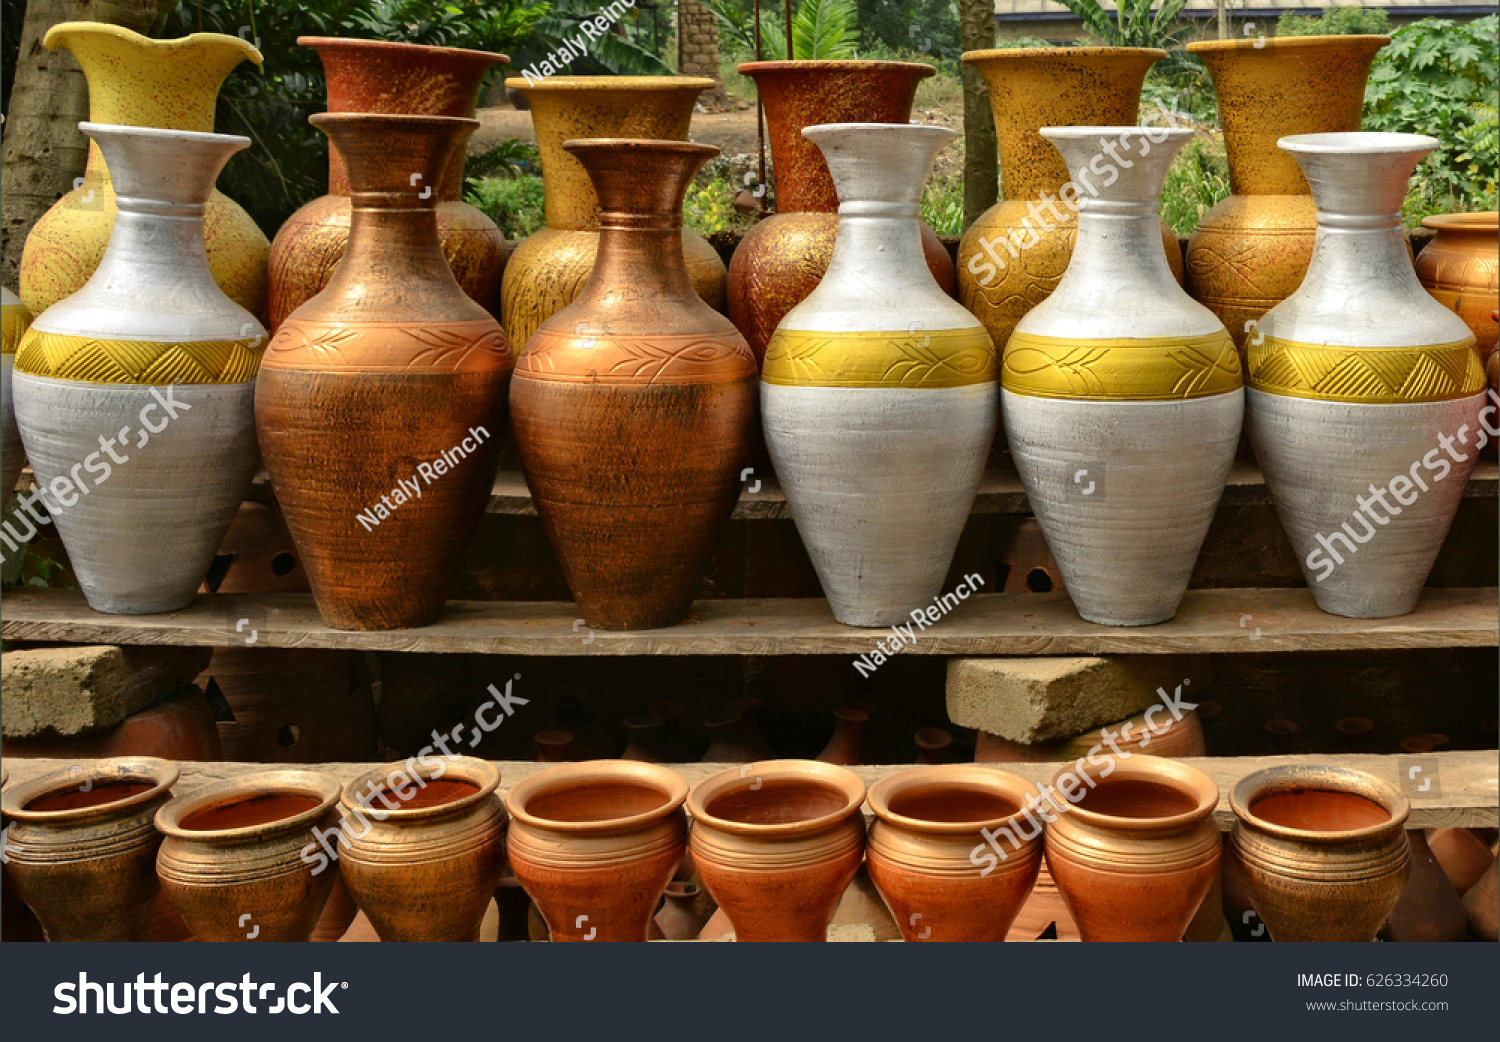 Unique handmade colorful ceramic vases clay stock photo 626334260 unique handmade colorful ceramic vases clay pots stacked for sale pottery making place reviewsmspy